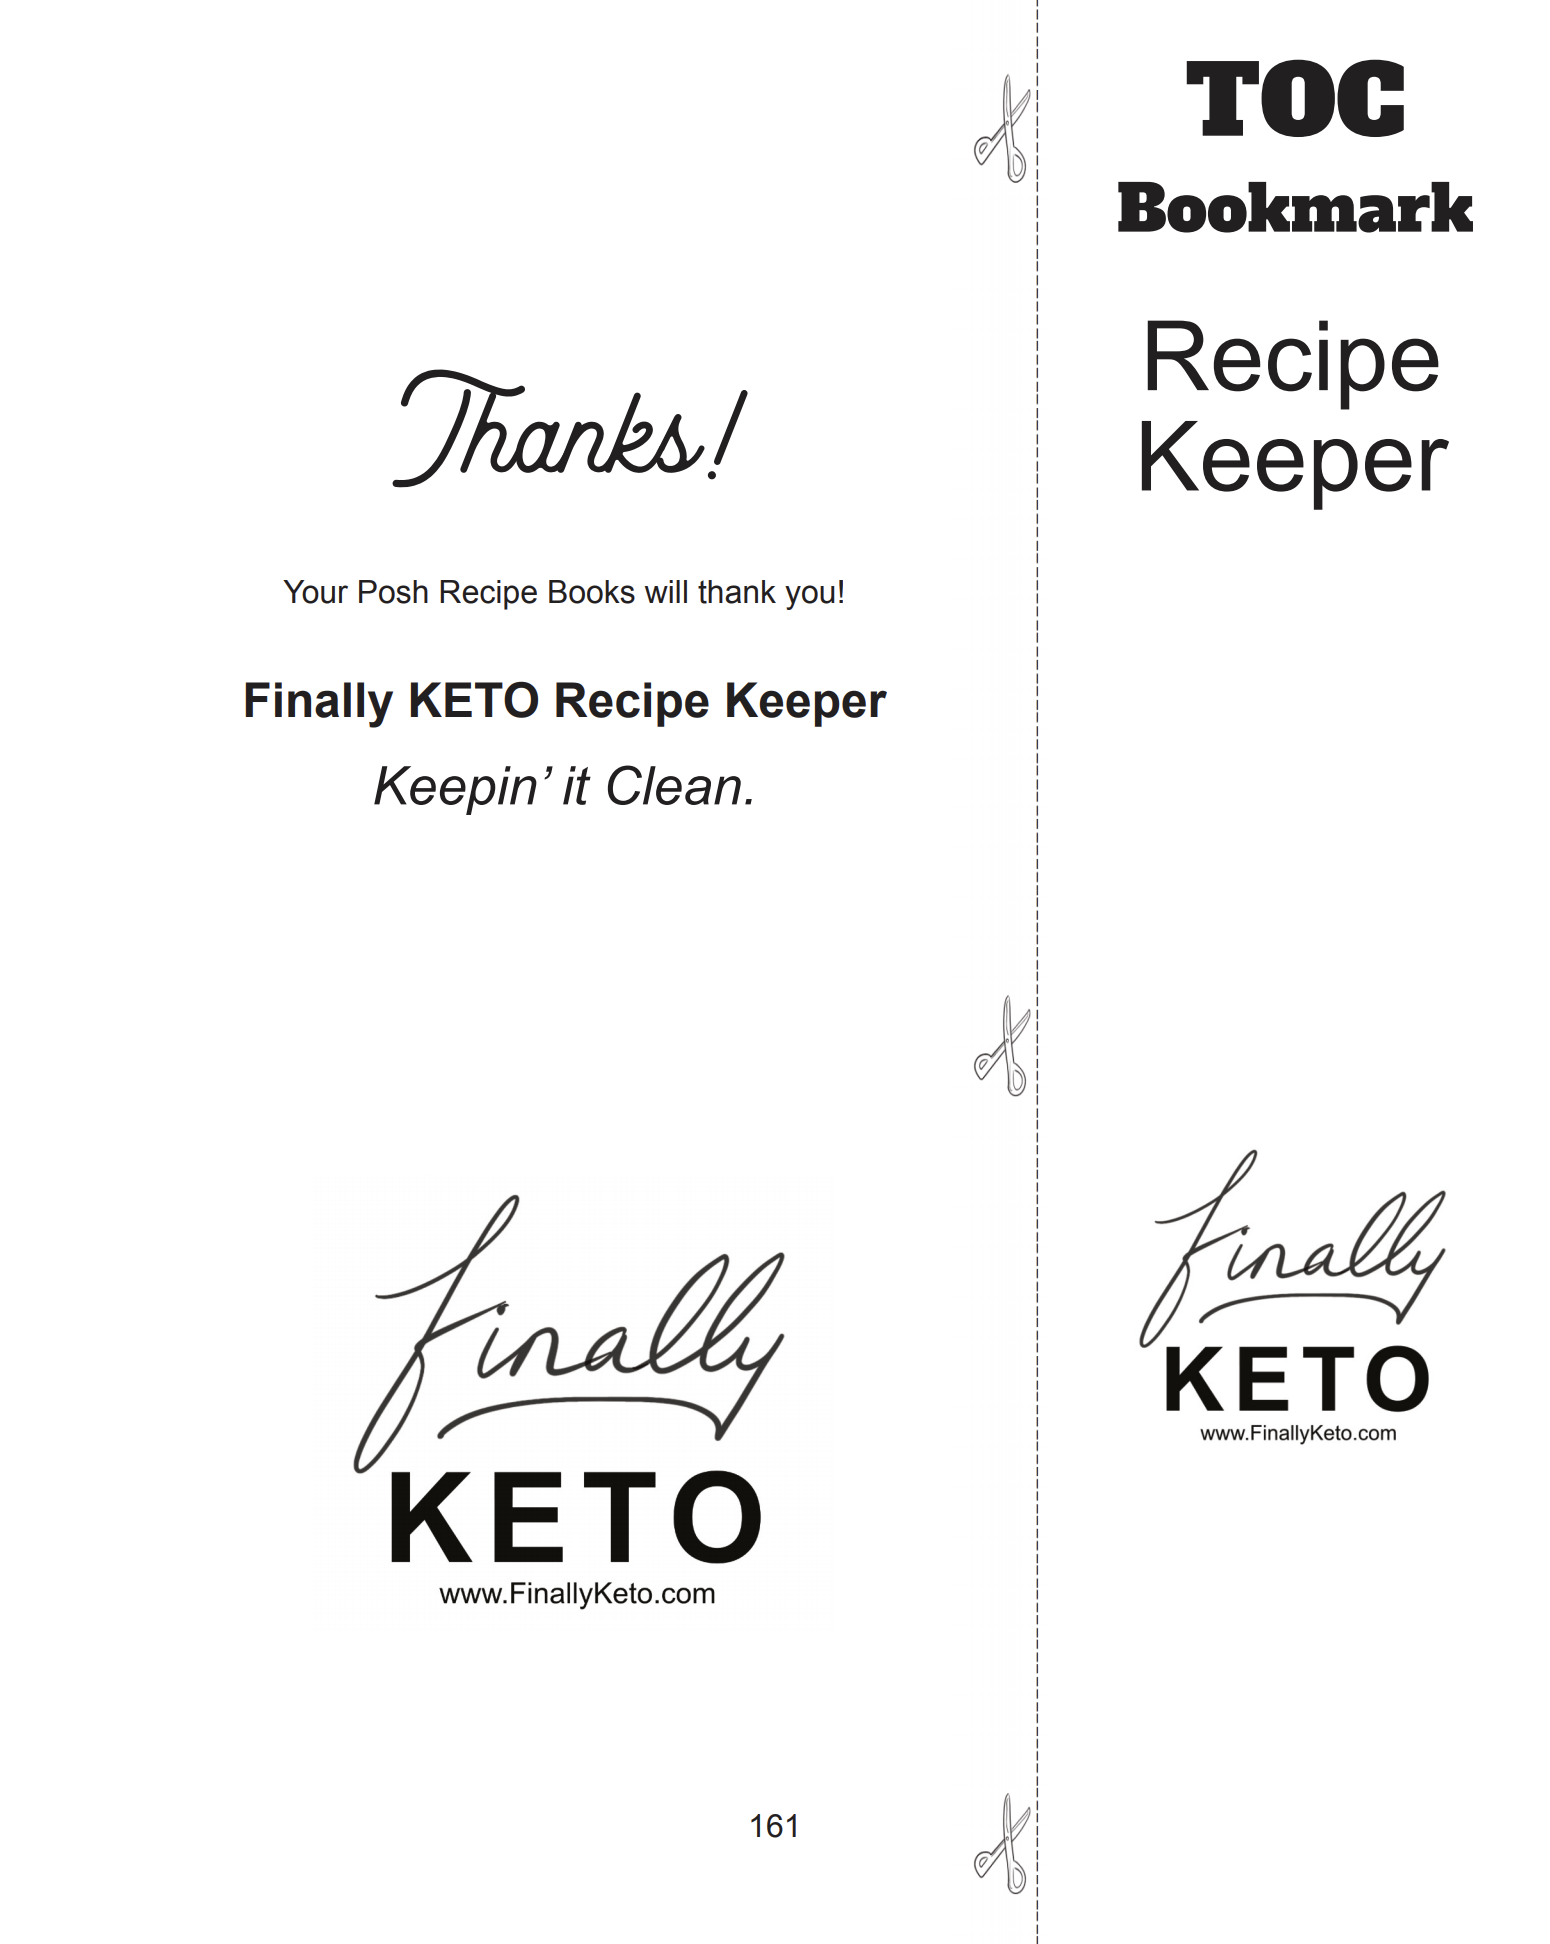 Finally Keto Recipe Keeper free bookmarks in paperback book!